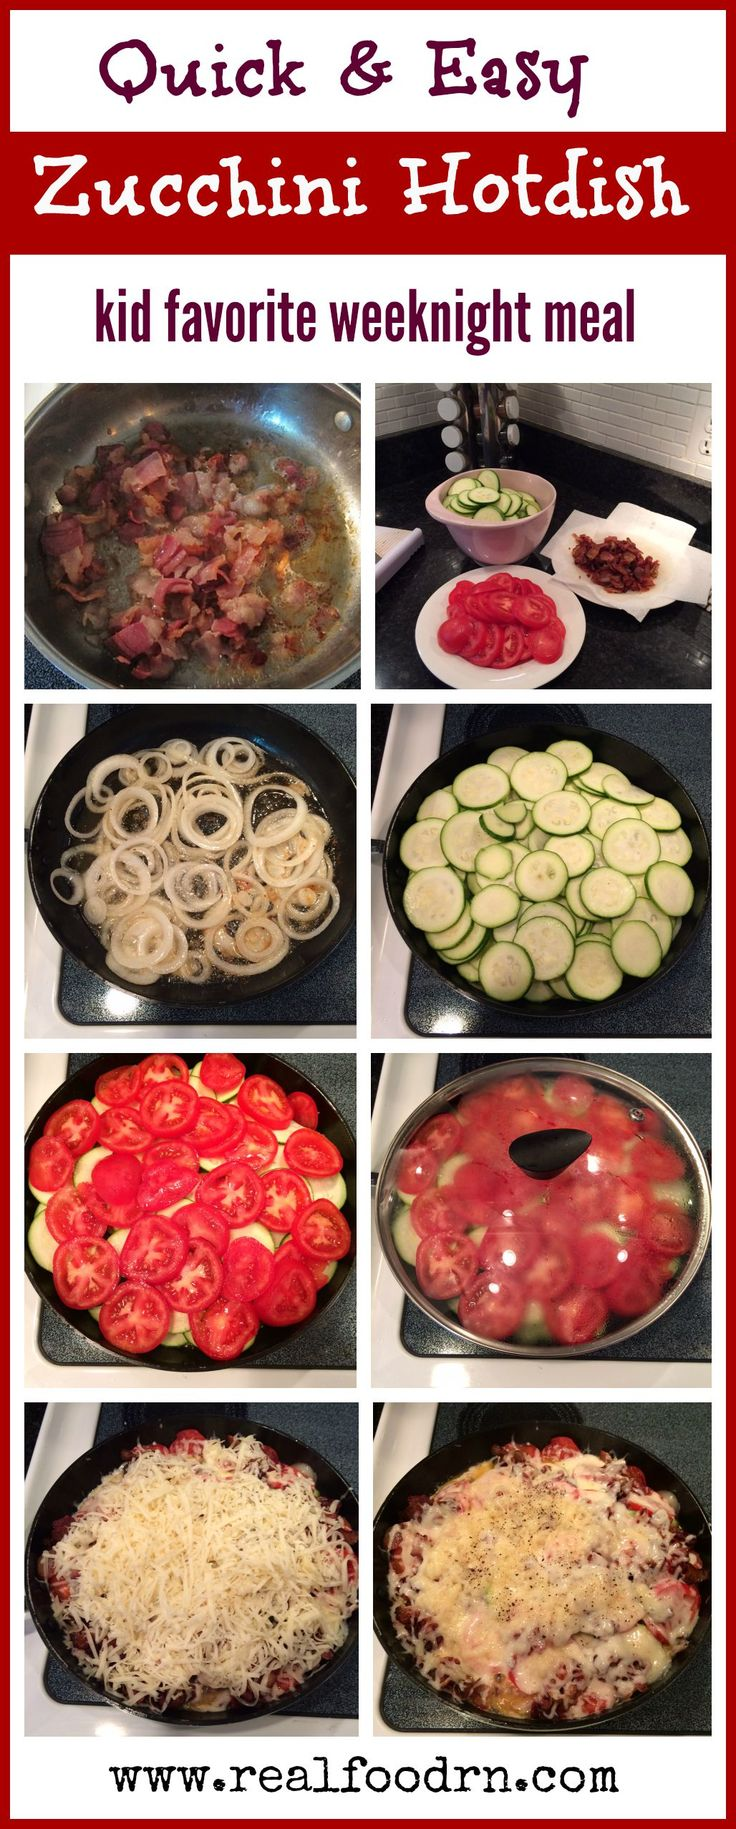 nike shox nz eu womens Zucchini Hotdish  A weekly request from my kiddos  This one pot meal is not only easy  but its super delicious  Check out the recipe for a quick how to video too  realfoodrn com  zucchini  hotdish